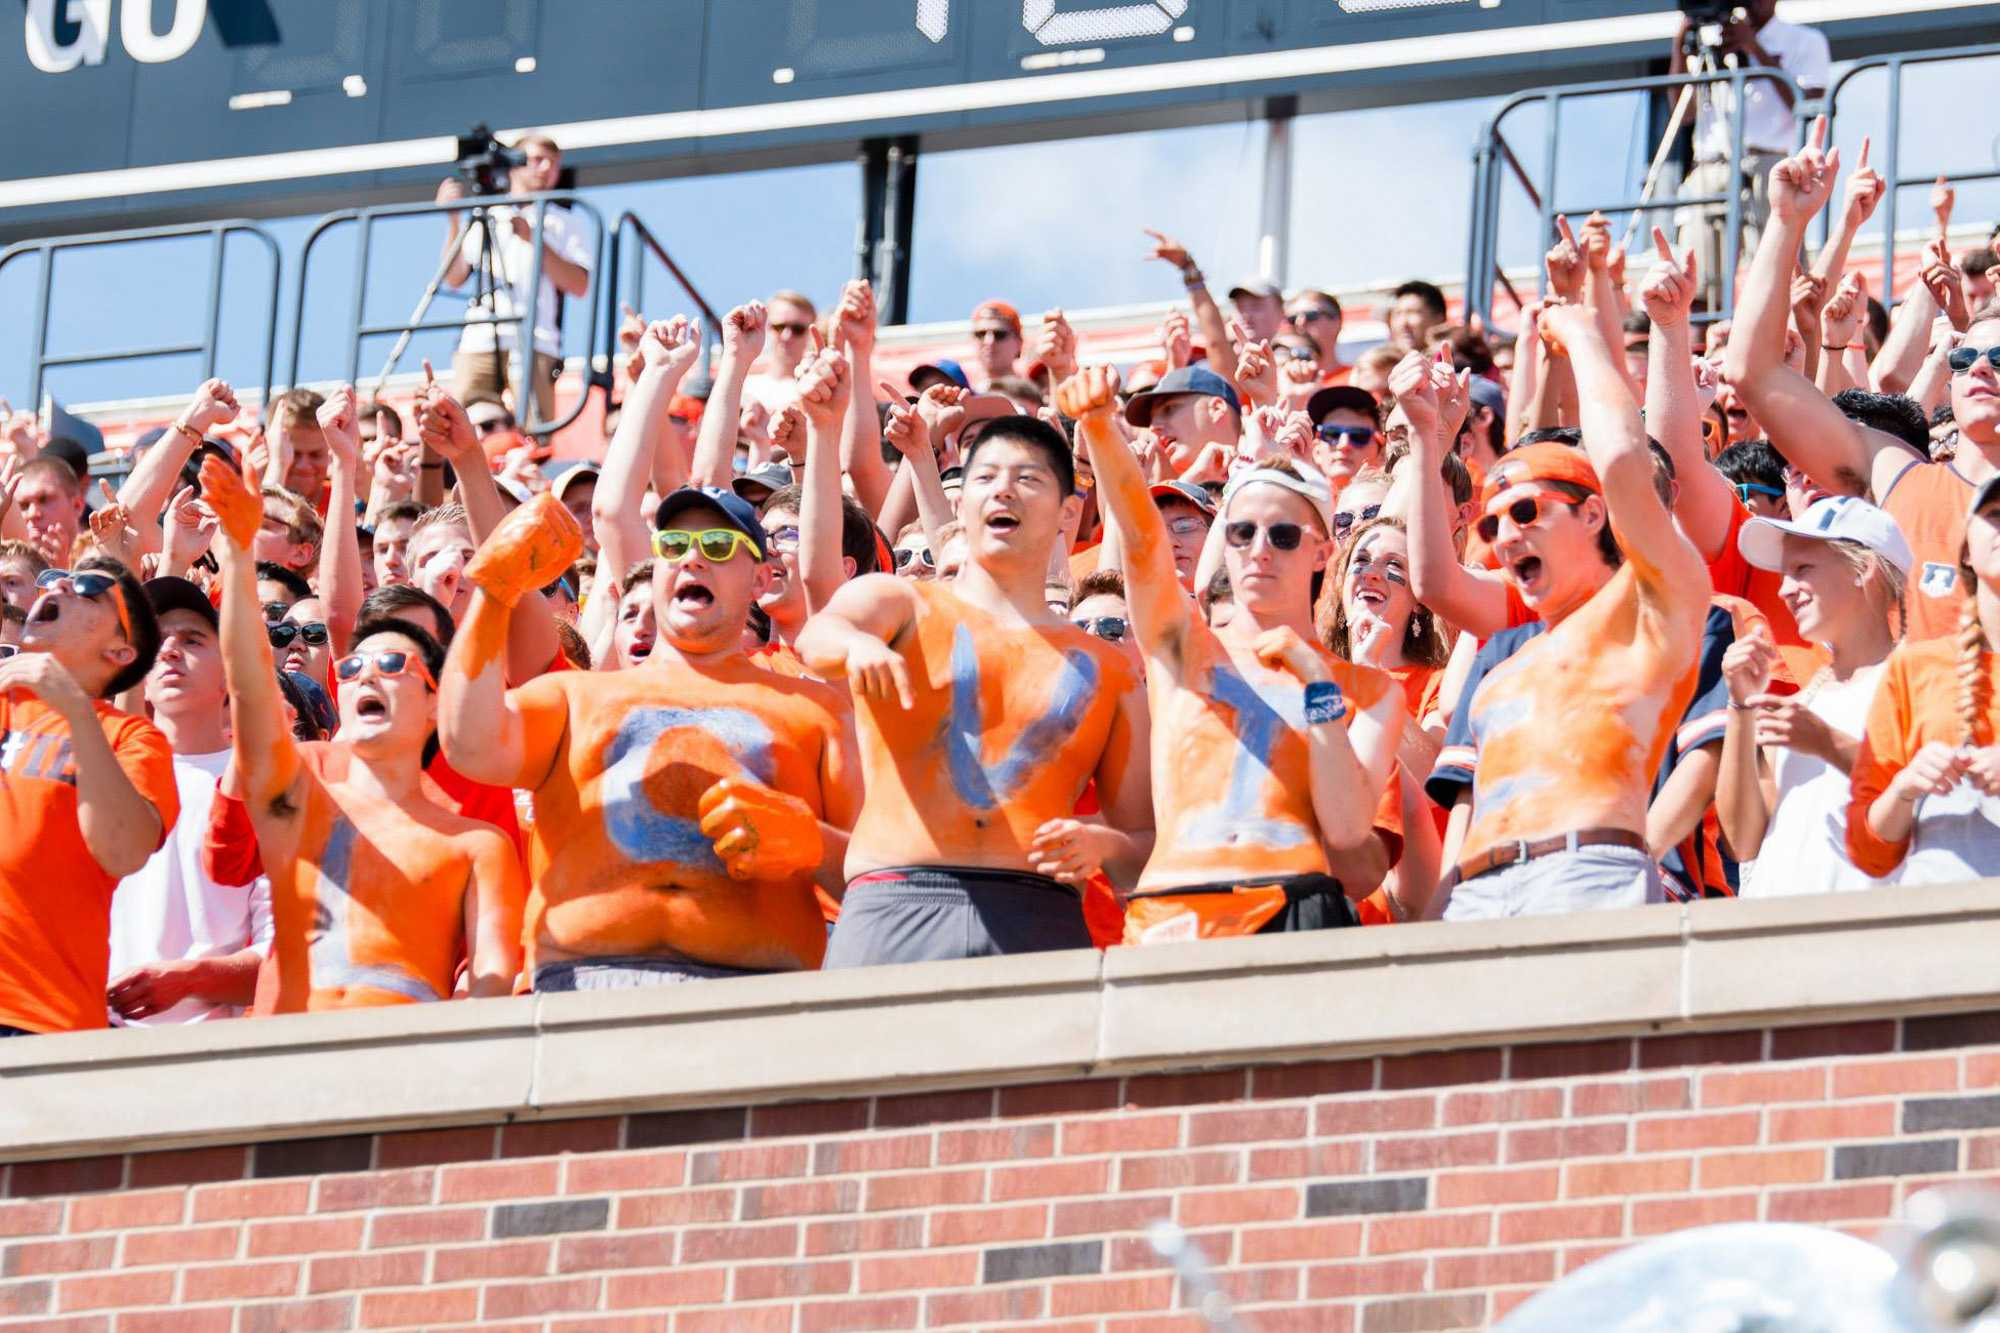 Students wear body paint spelling out Lovie's name cheer during the football game against Murray State.